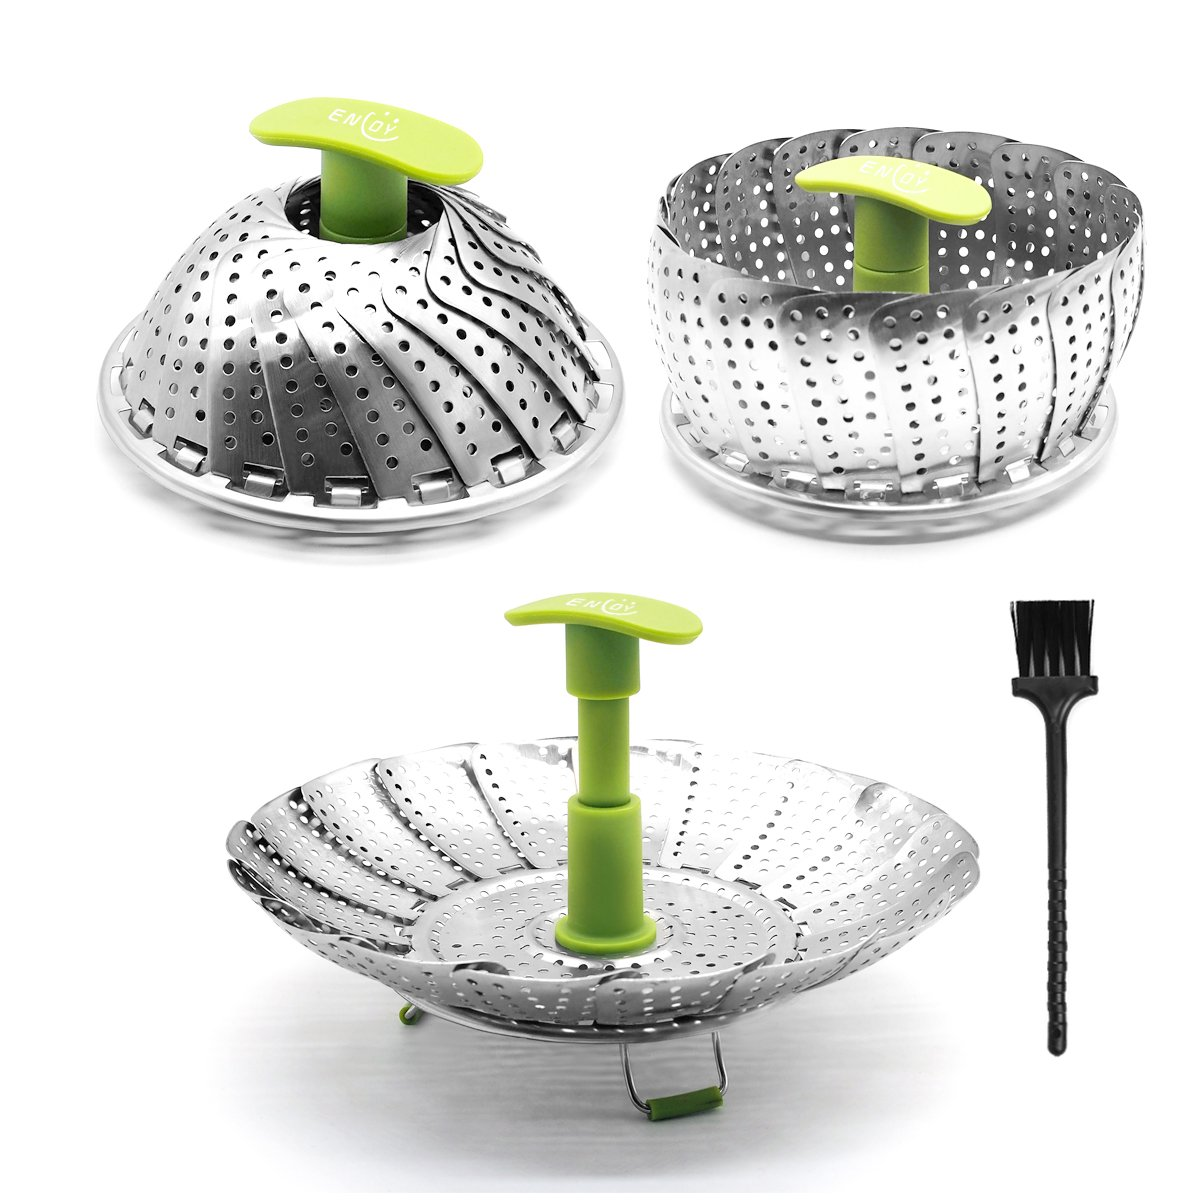 Steamer Basket Stainless Steel Vegetable Steamer Folding Steamer Insert for Veggie Fish Seafood Cooking with Cleaning Brush & Great Grips, Expandable to Fit Various Size Pot (6